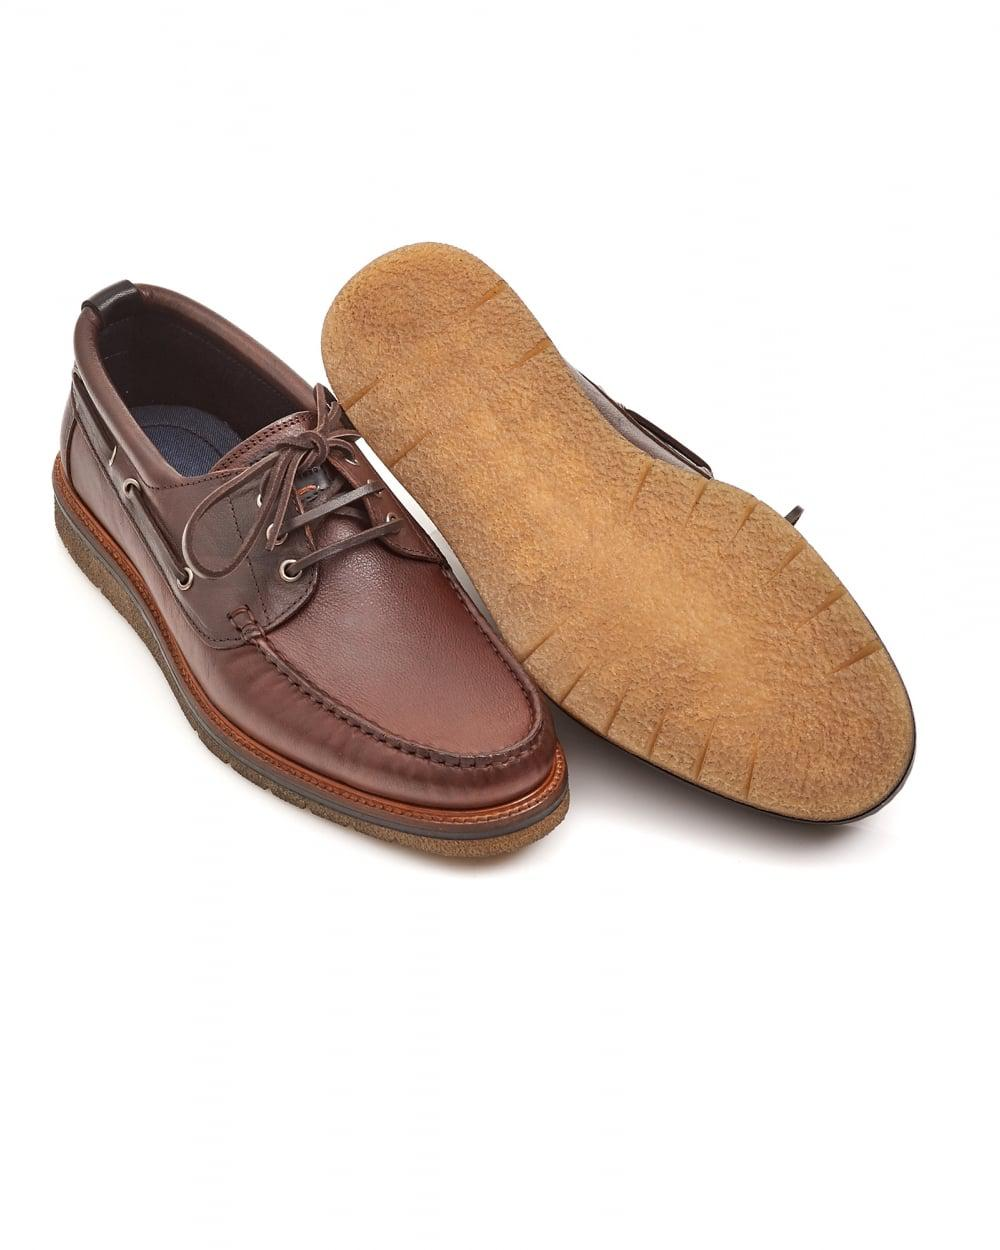 89df9d73611 Lyst - BOSS Tuned mocc Lace Rust Leather Moccasins in Brown for Men